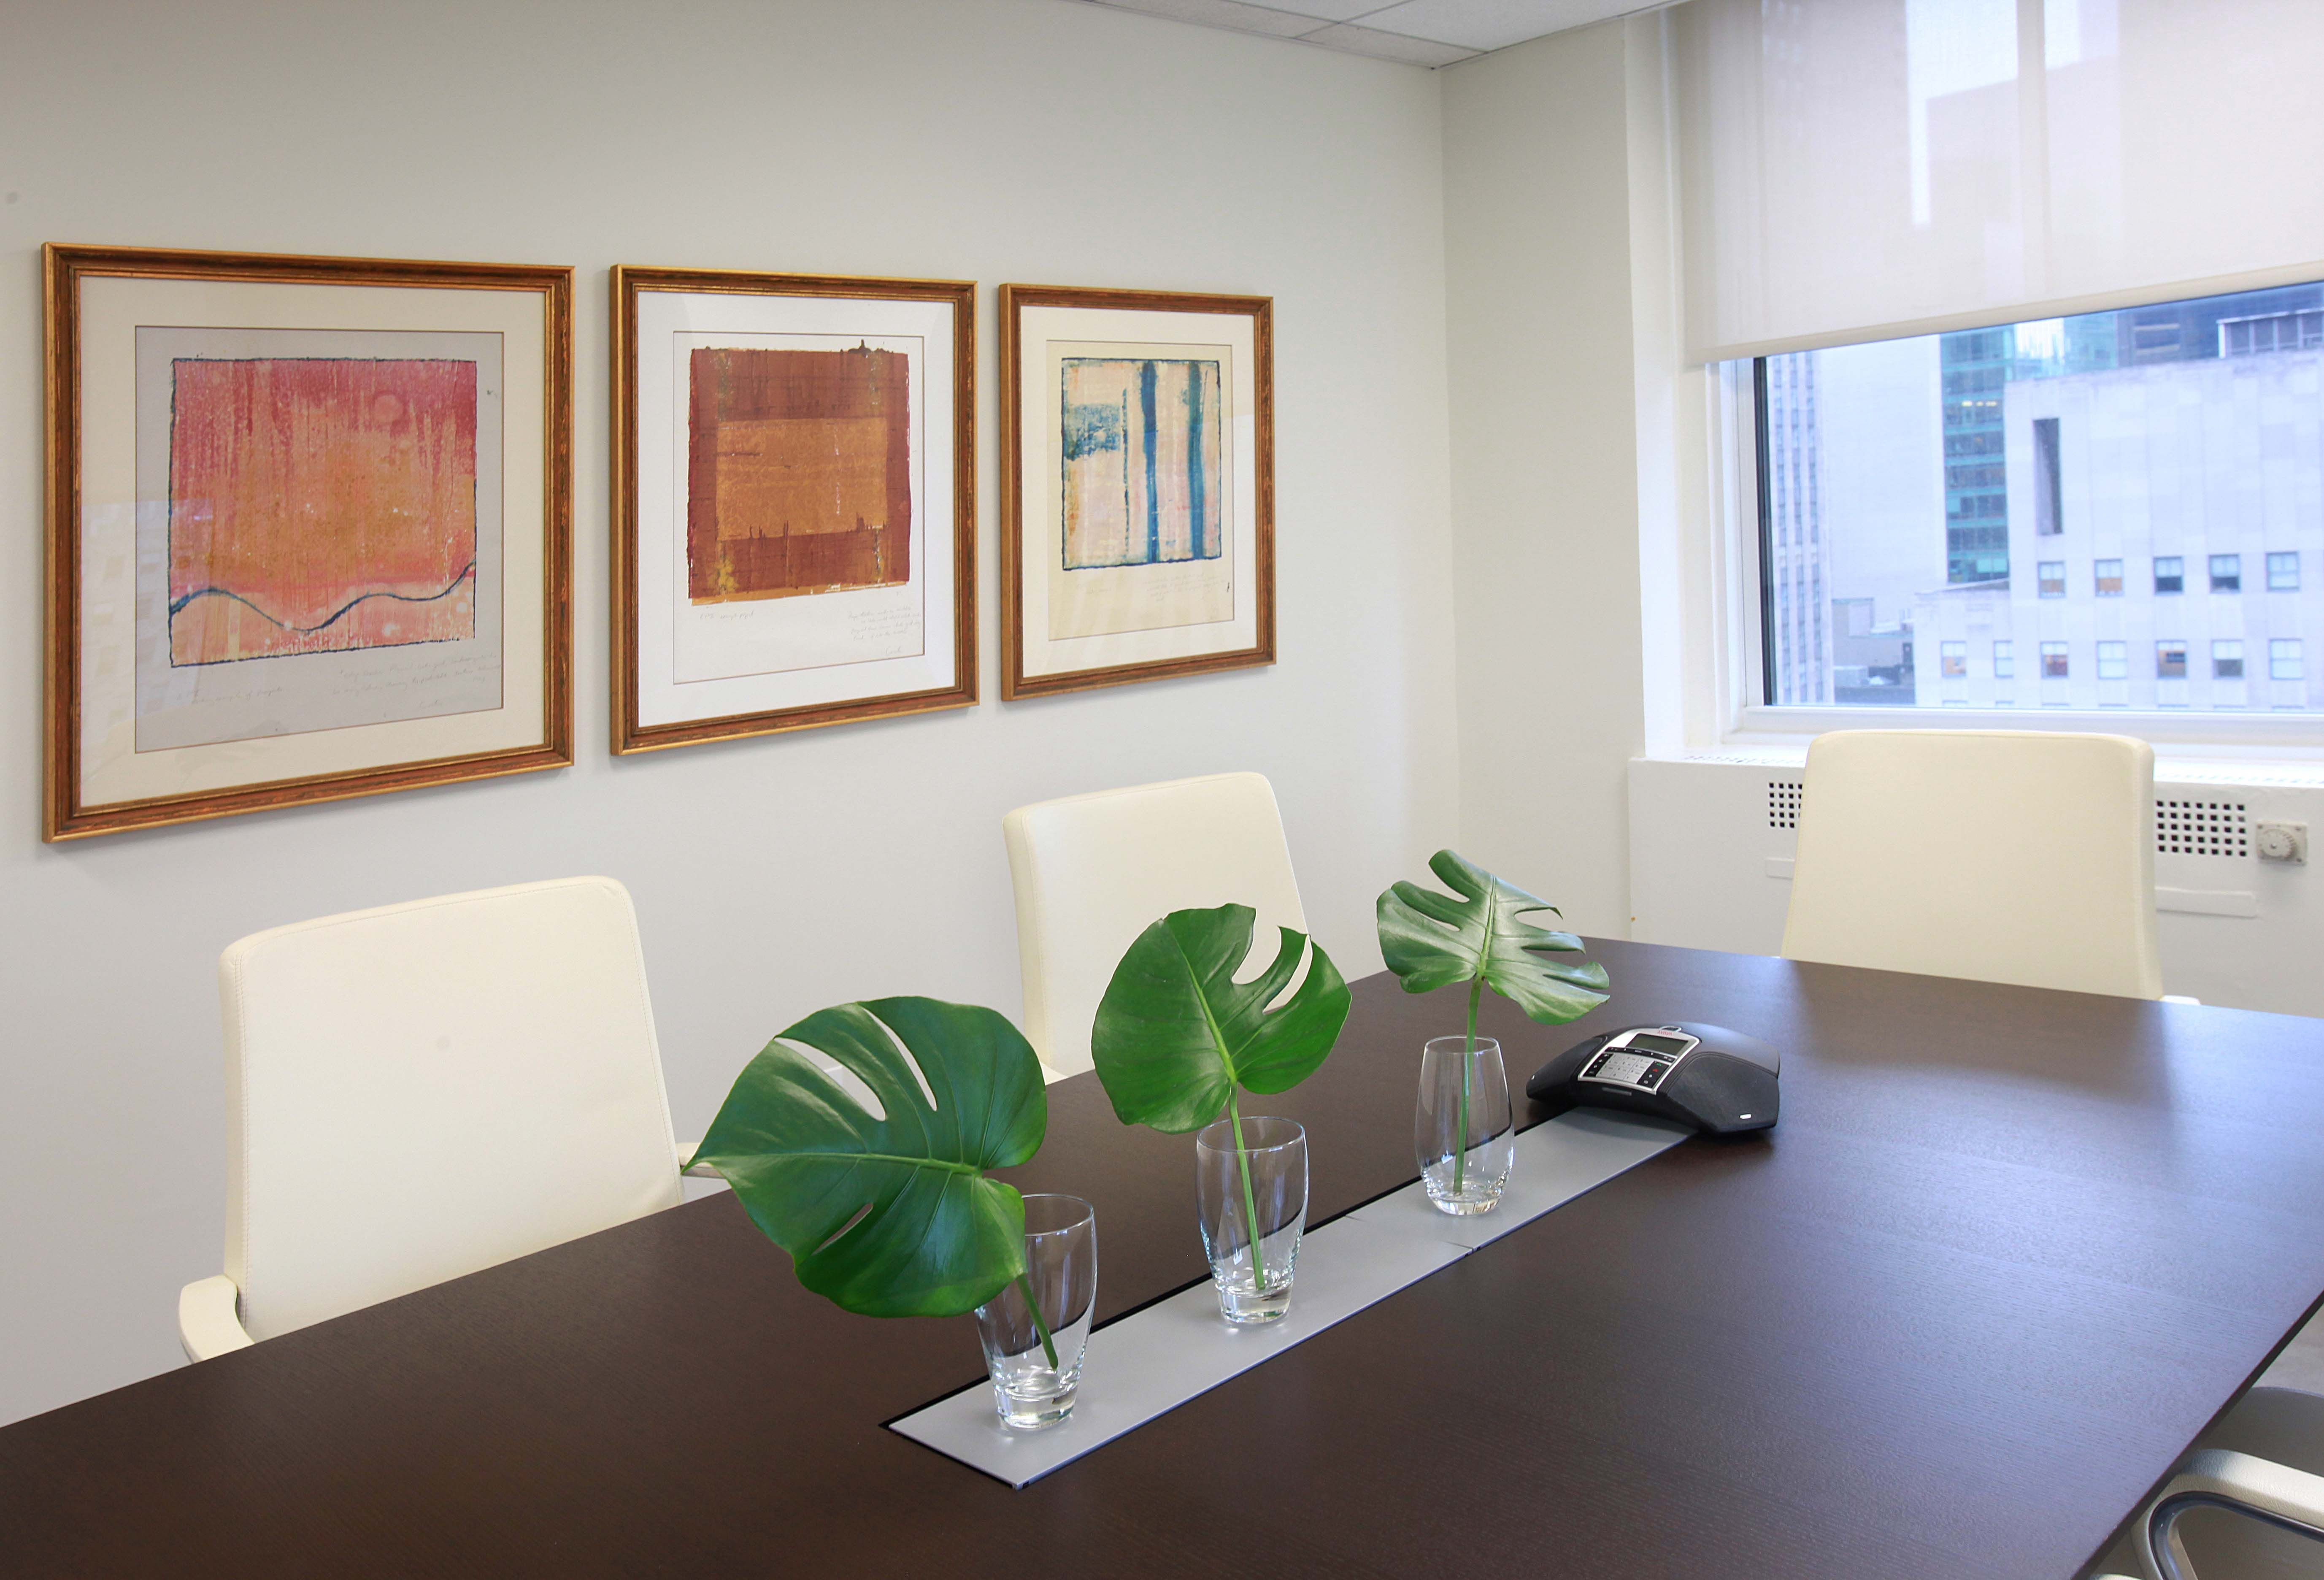 eco friendly corporate office.  Office NYC Eco Friendly Corporate Office Interior Design Conference Room Photo Throughout I